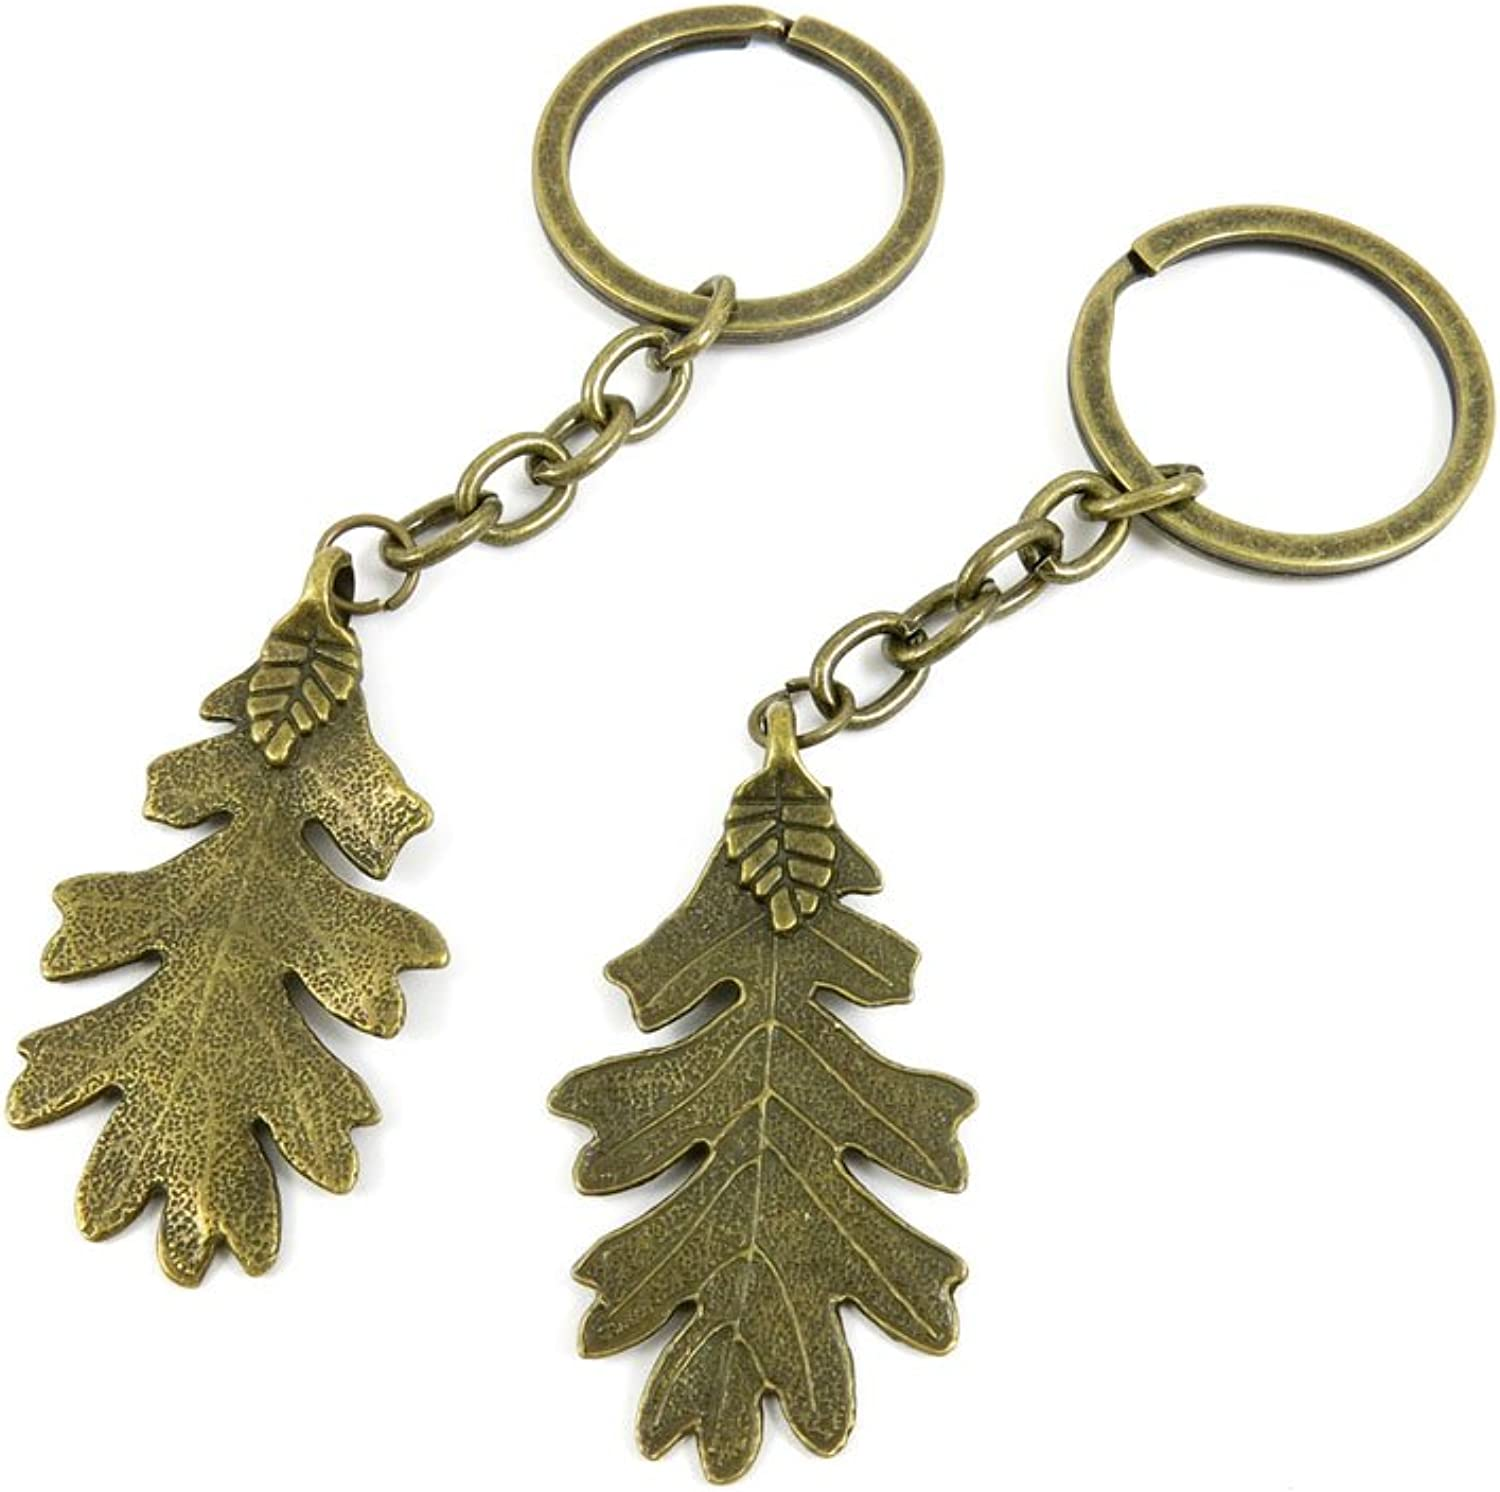 100 PCS Keyrings Keychains Key Ring Chains Tags Jewelry Findings Clasps Buckles Supplies P1MW4 Leaf Leaves